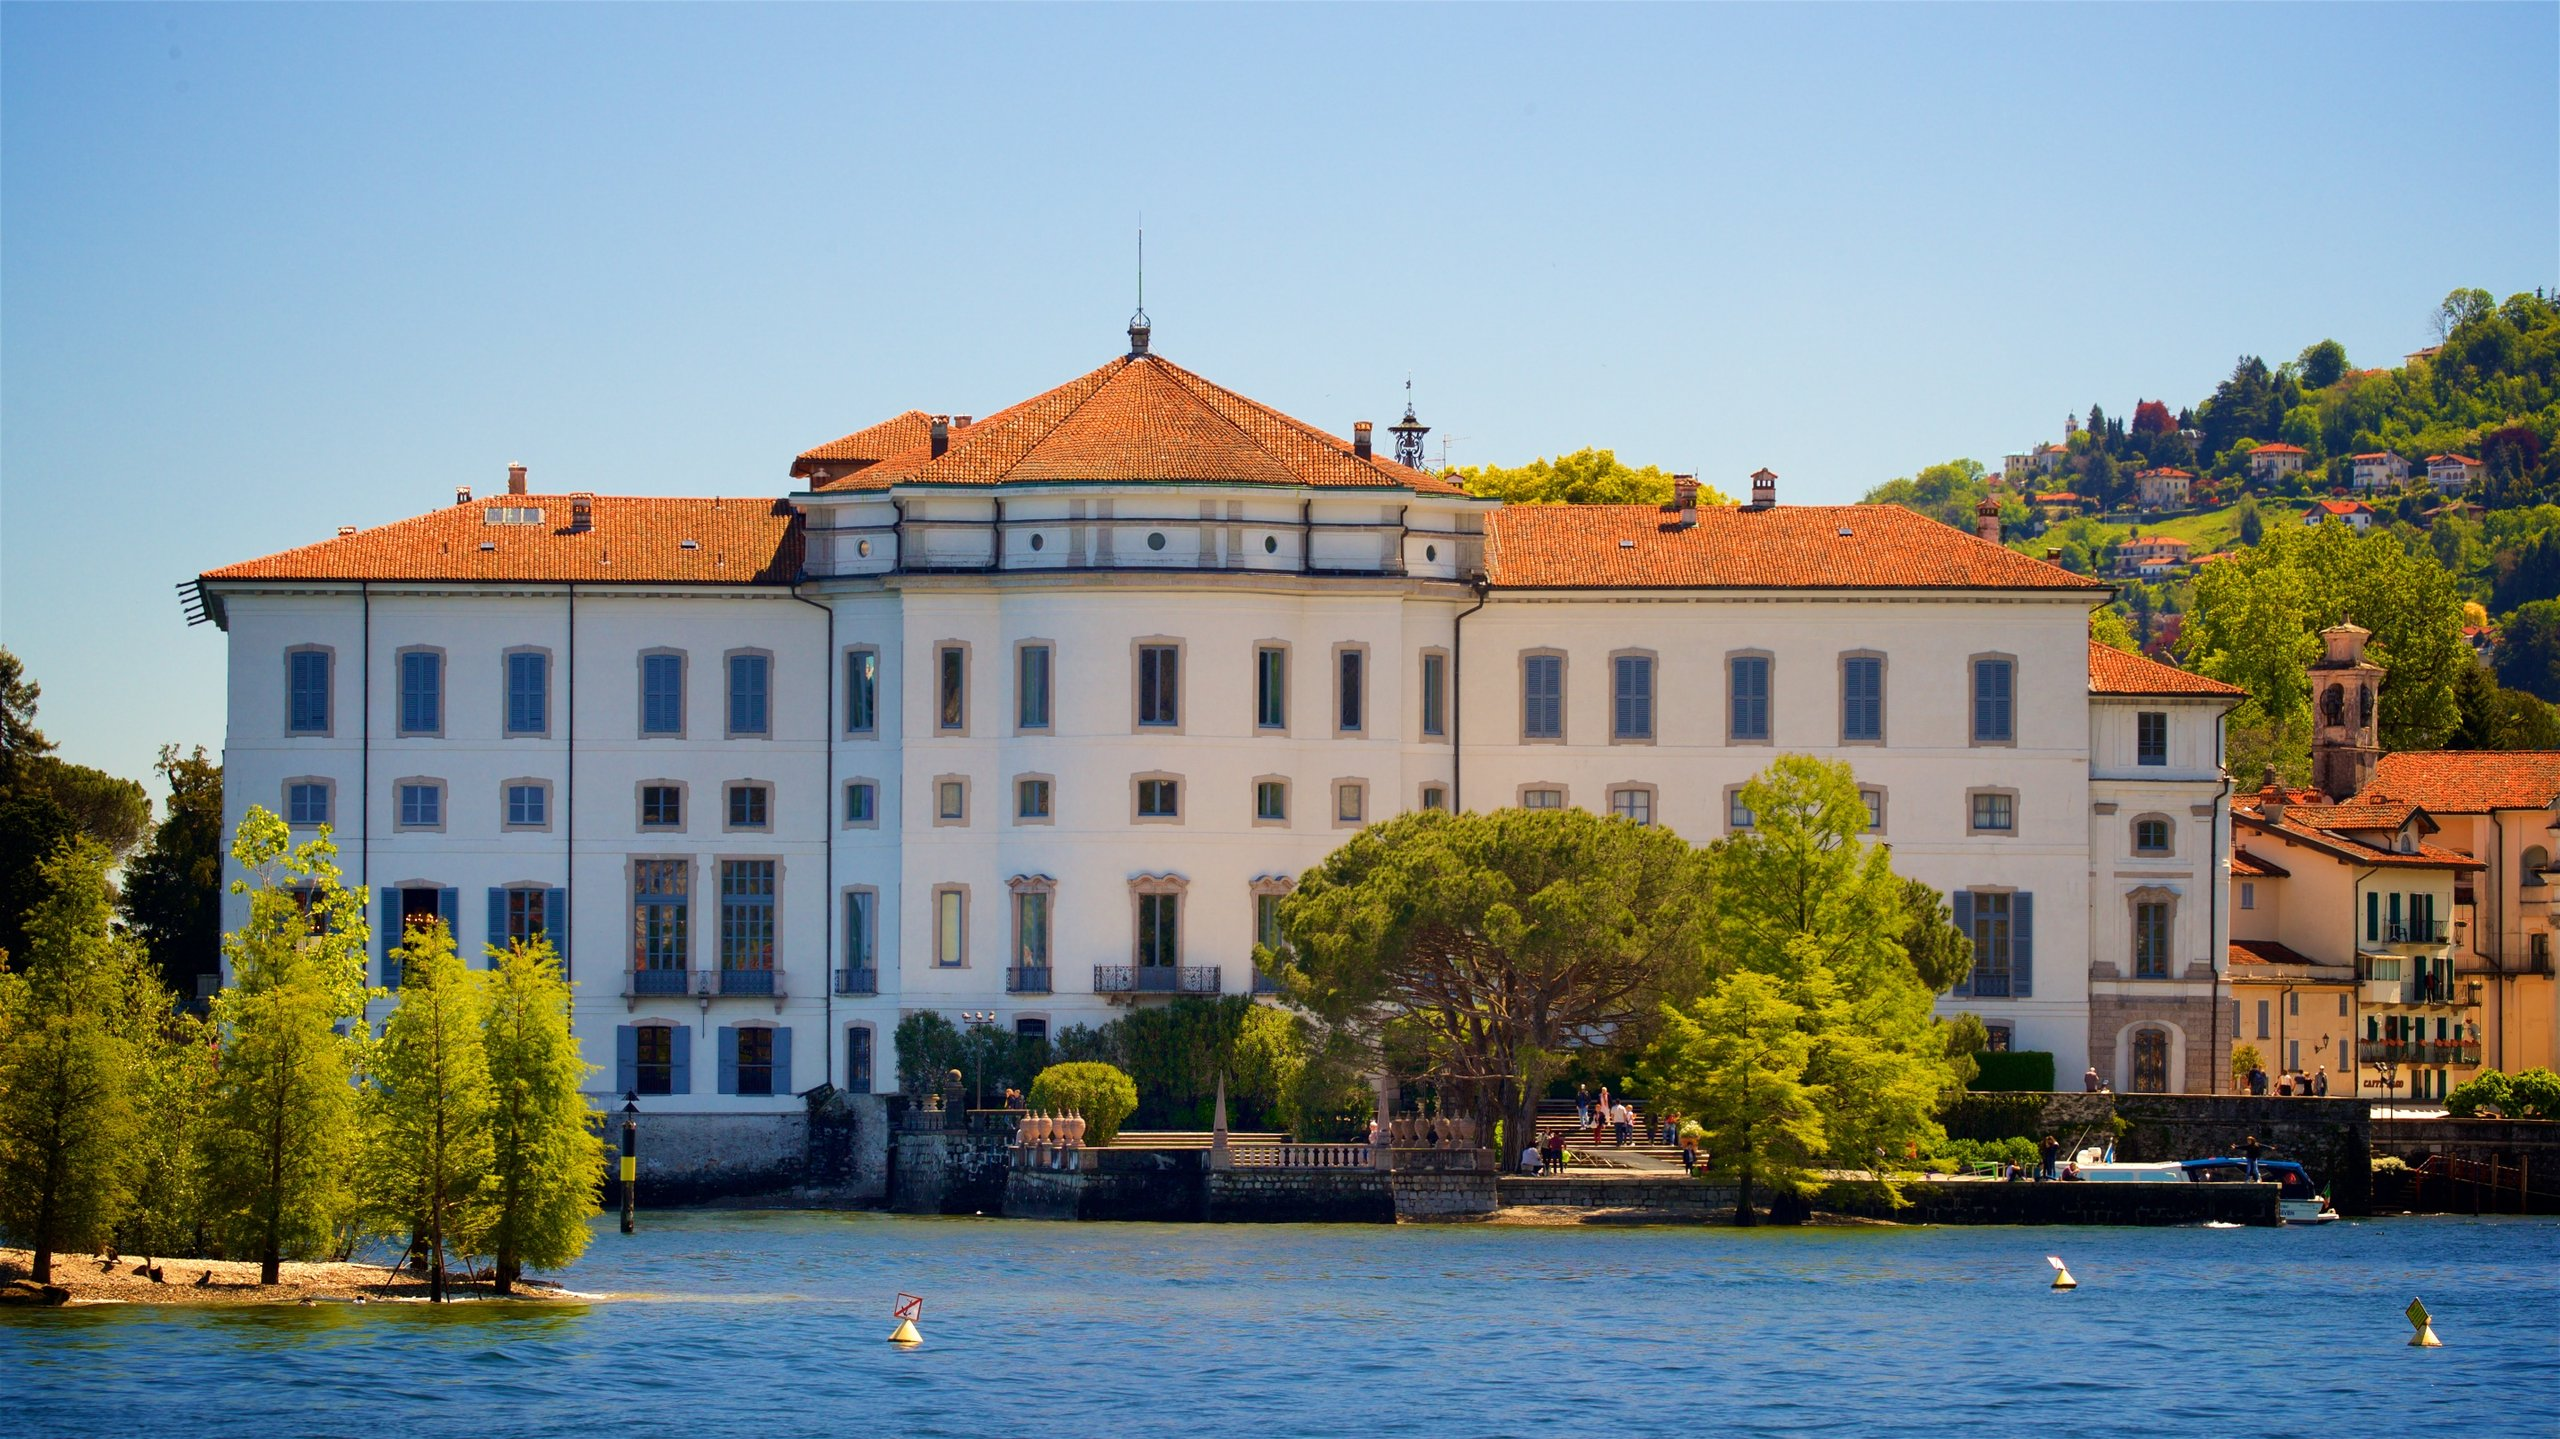 bfd49f3e0d The 10 Best Hotels in Stresa, Piedmont $97 for 2019 | Expedia